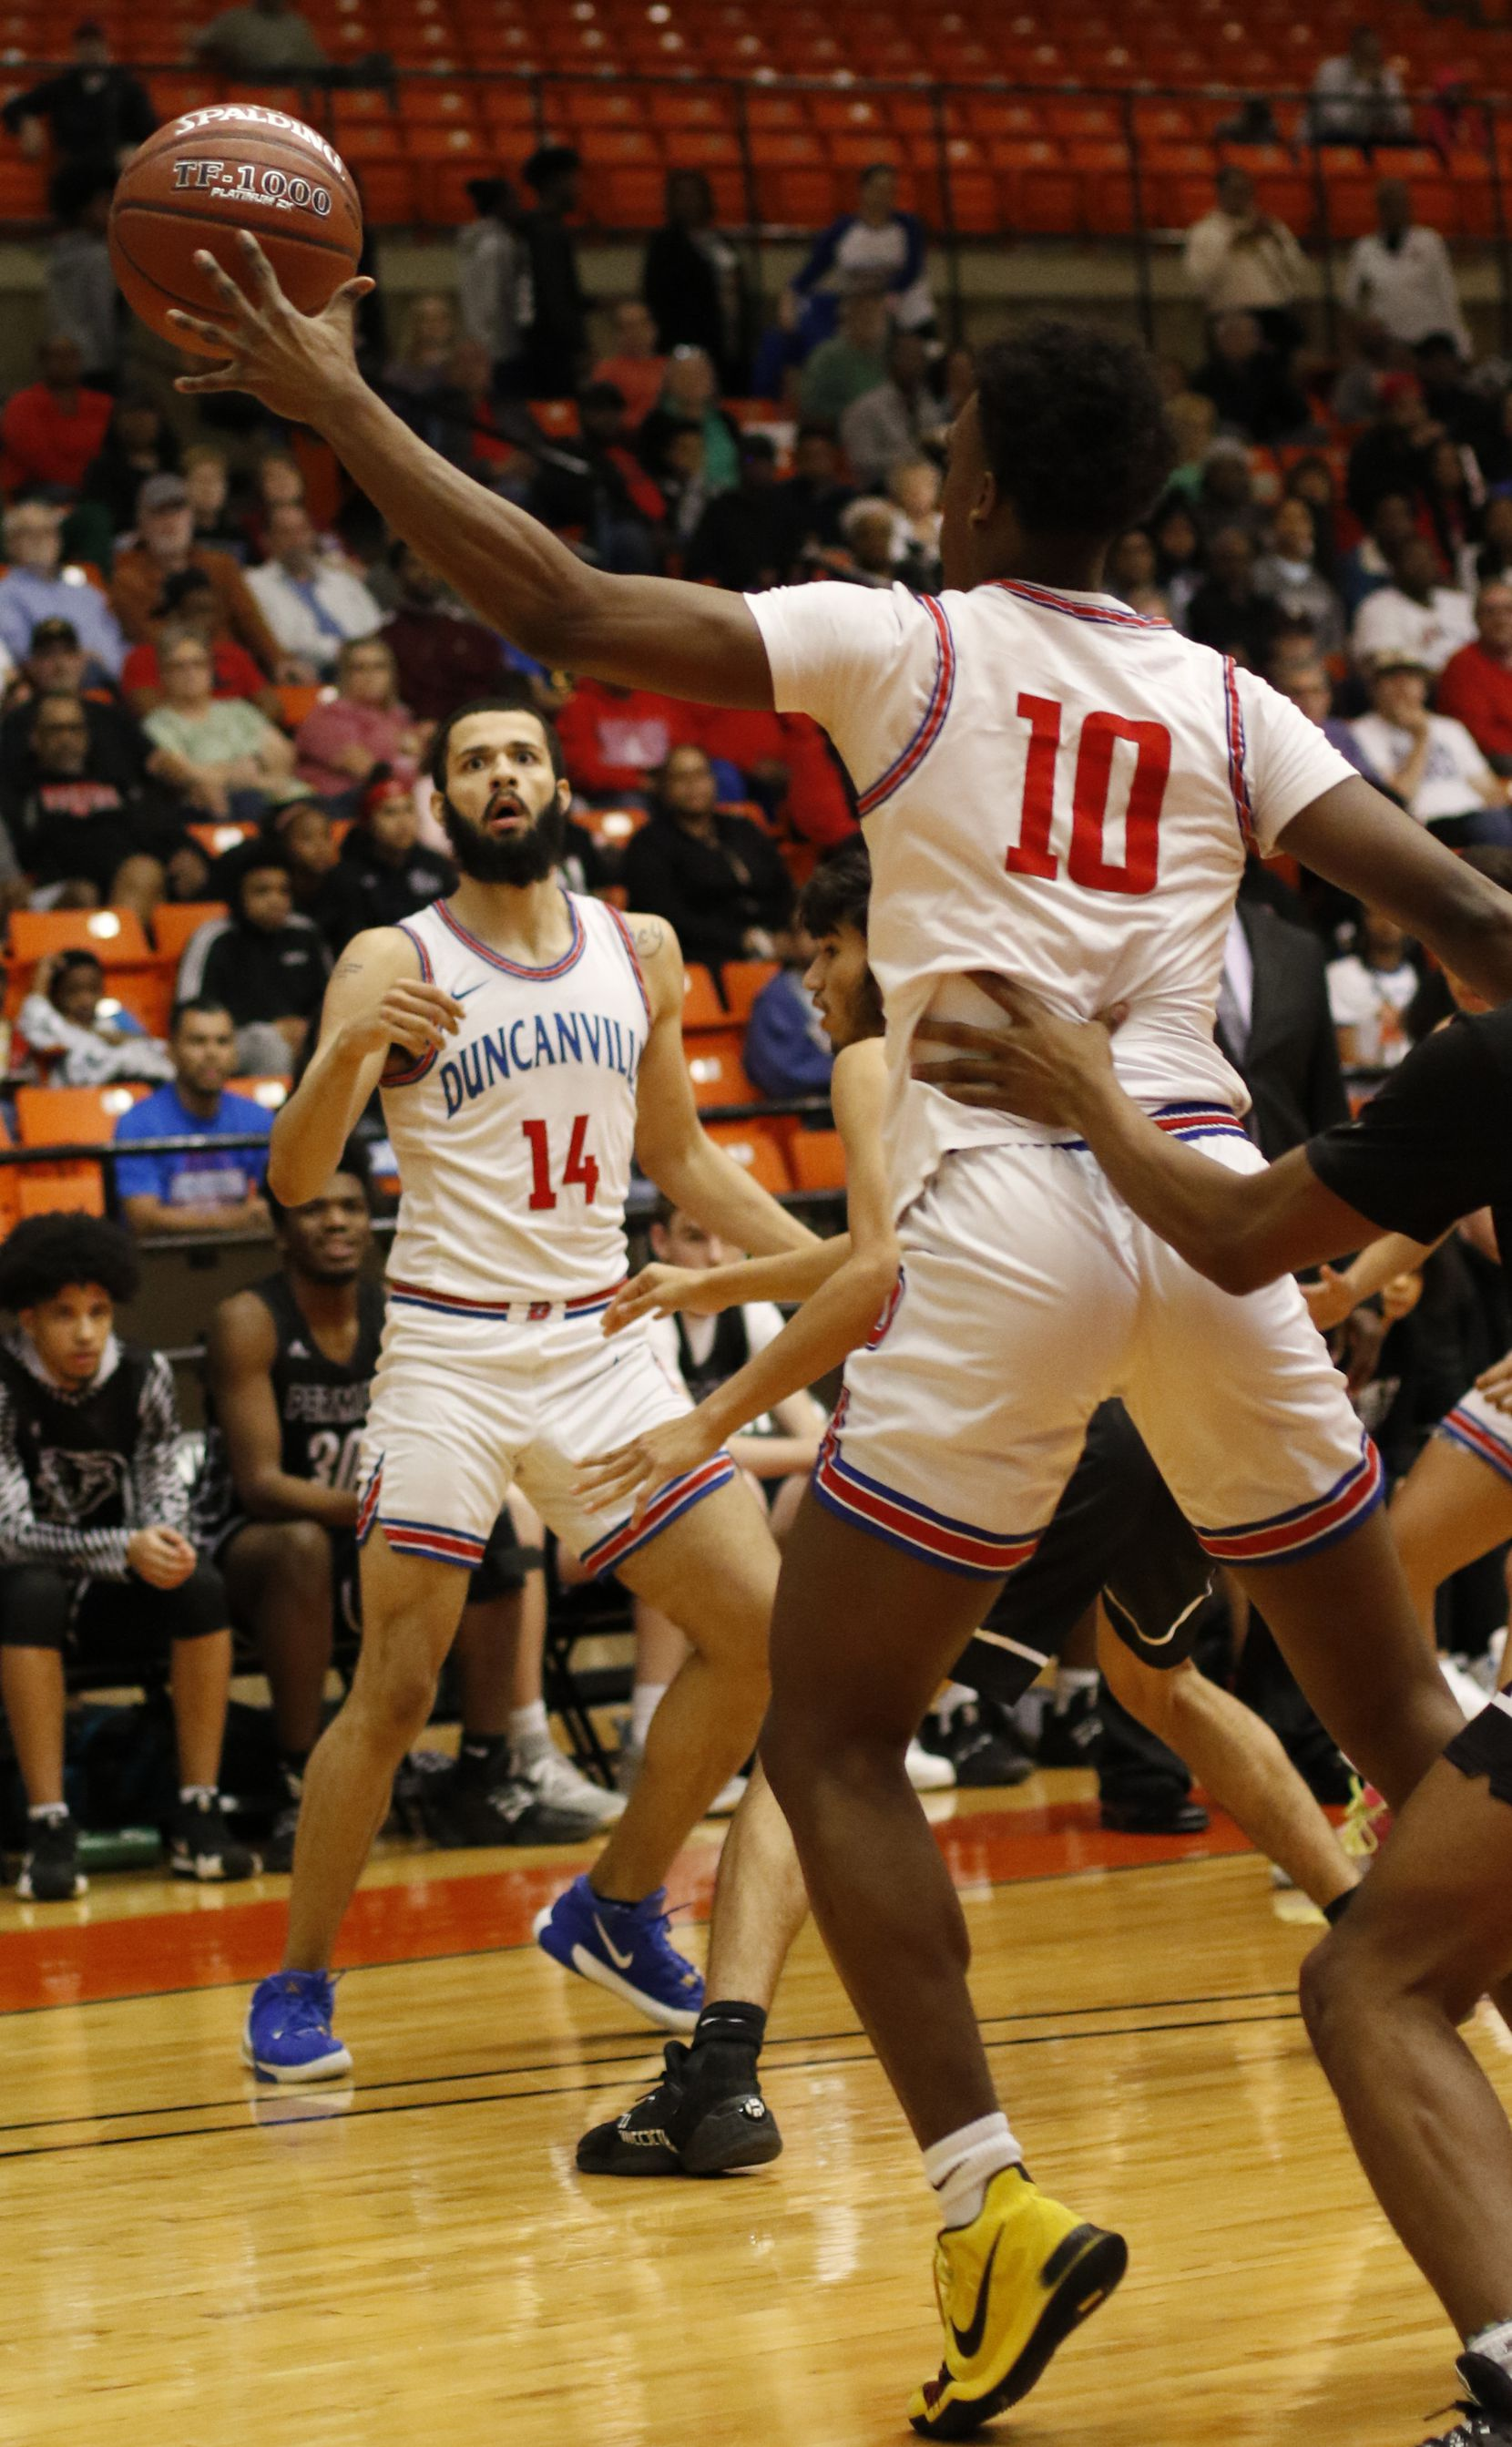 Duncanville forward Robert Banks (14) watches his pass reach its destination as guard Damon Nicholas (10) pulls it in during first half action against Odessa Permian. The two teams played in the Class 6A Region 1 championship boys basketball playoff game at Wilkerson-Greines Activity Center in Fort Worth on March 7, 2020.